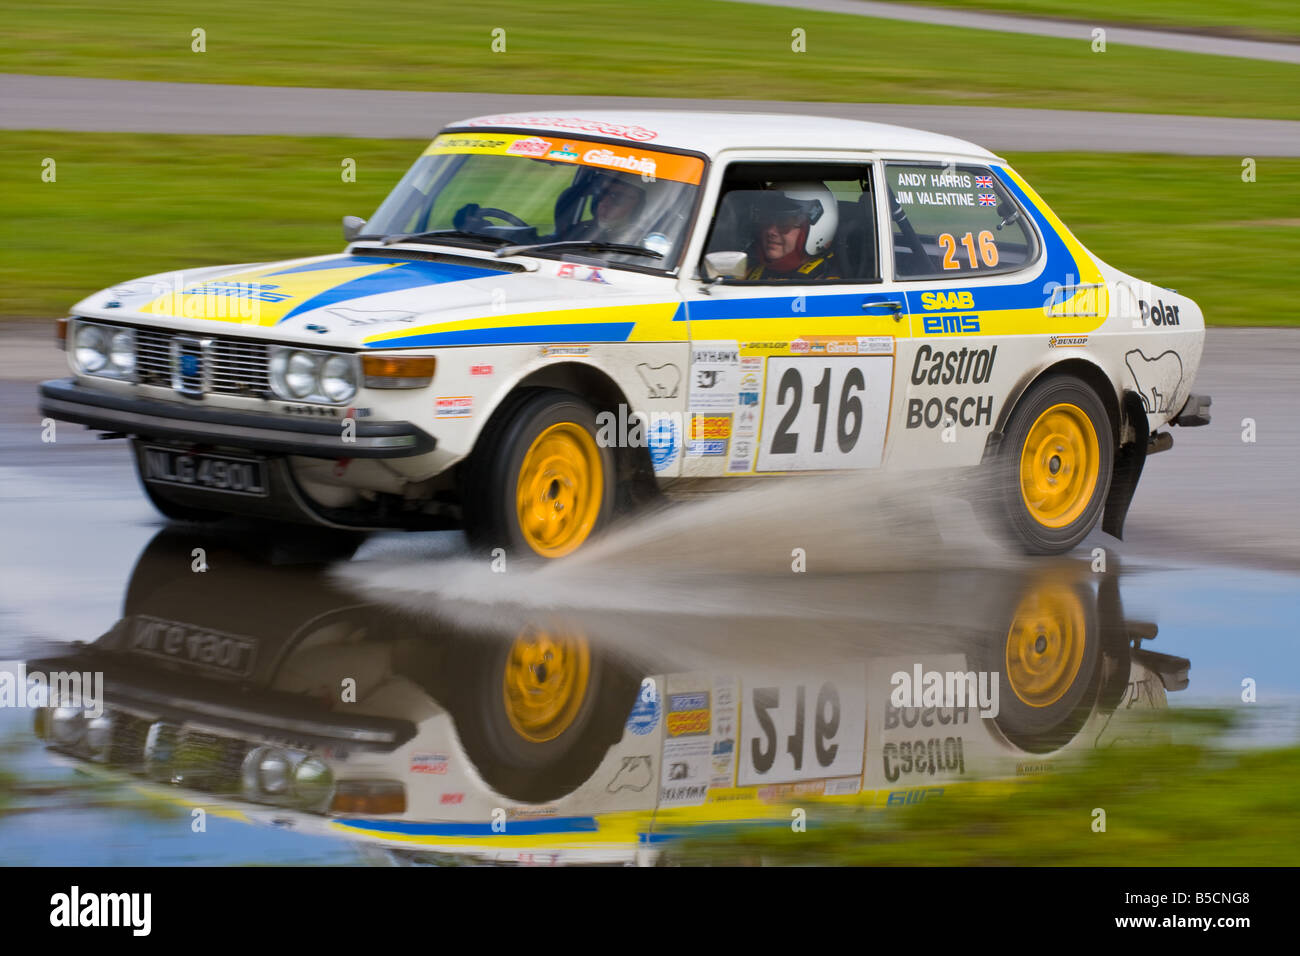 A classic Saab 99 going through a water splash with a great reflection - Stock Image